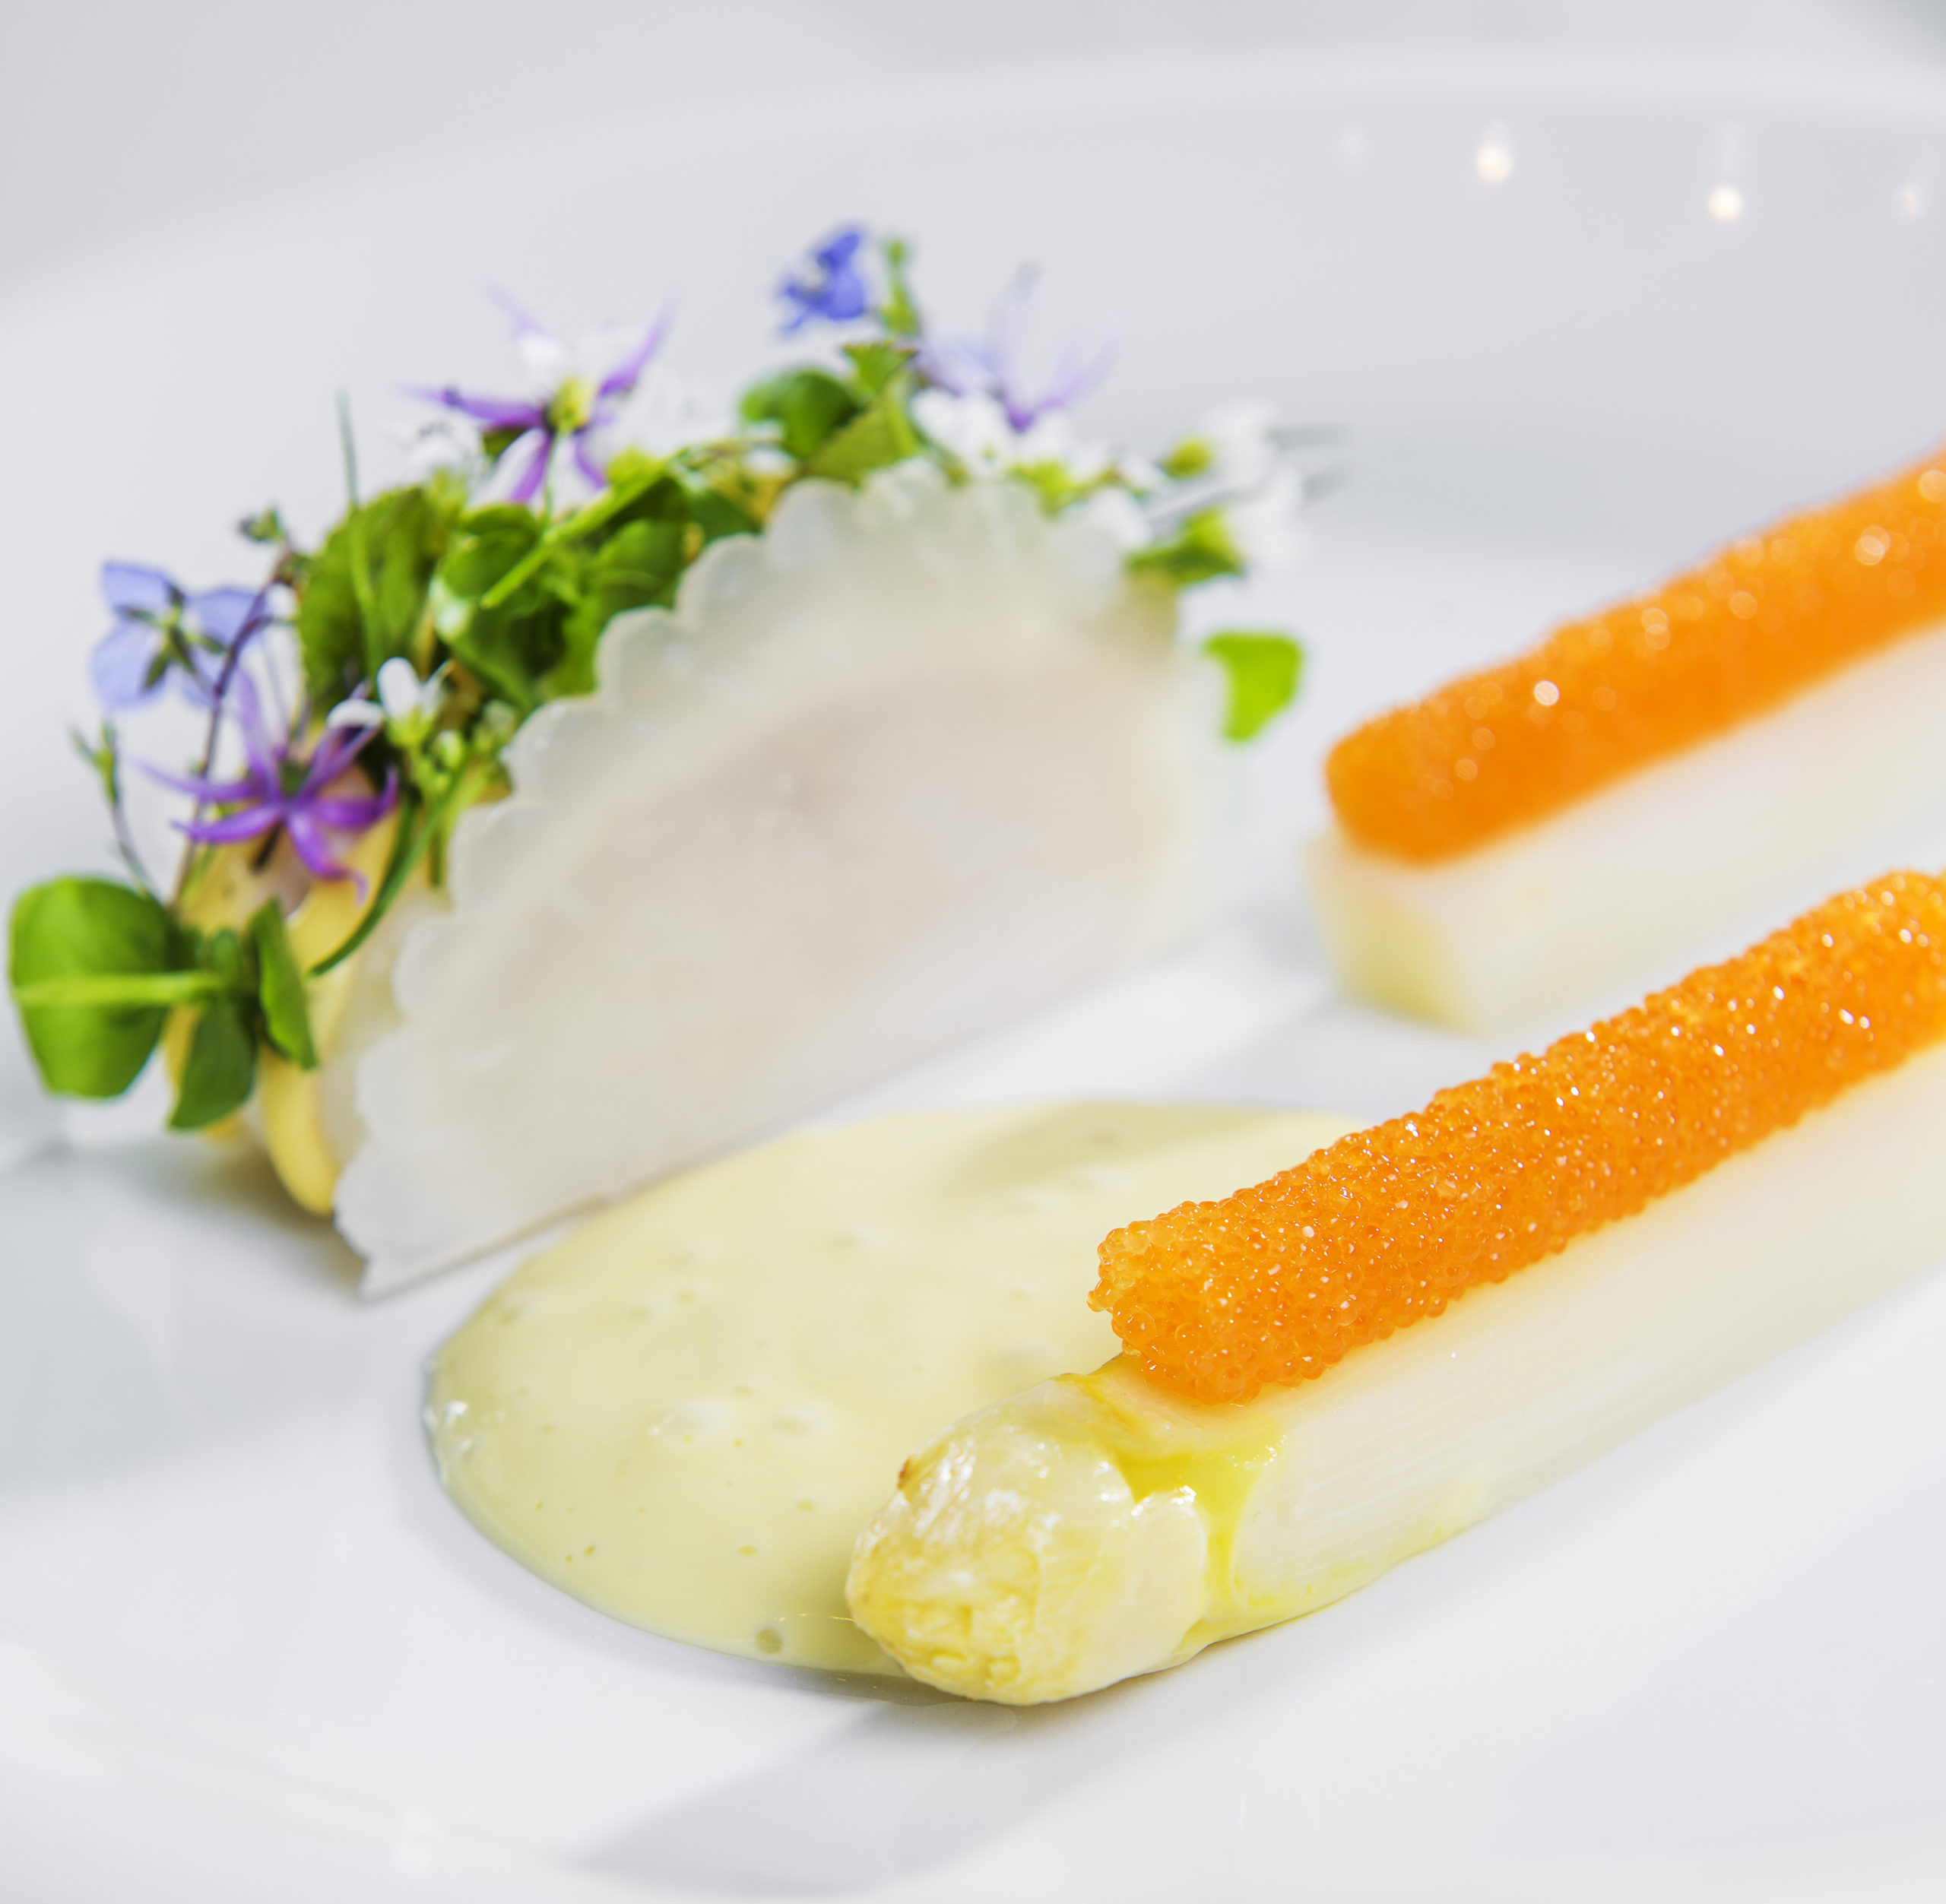 Speilsalen's Darling Buds Of may turbot dish